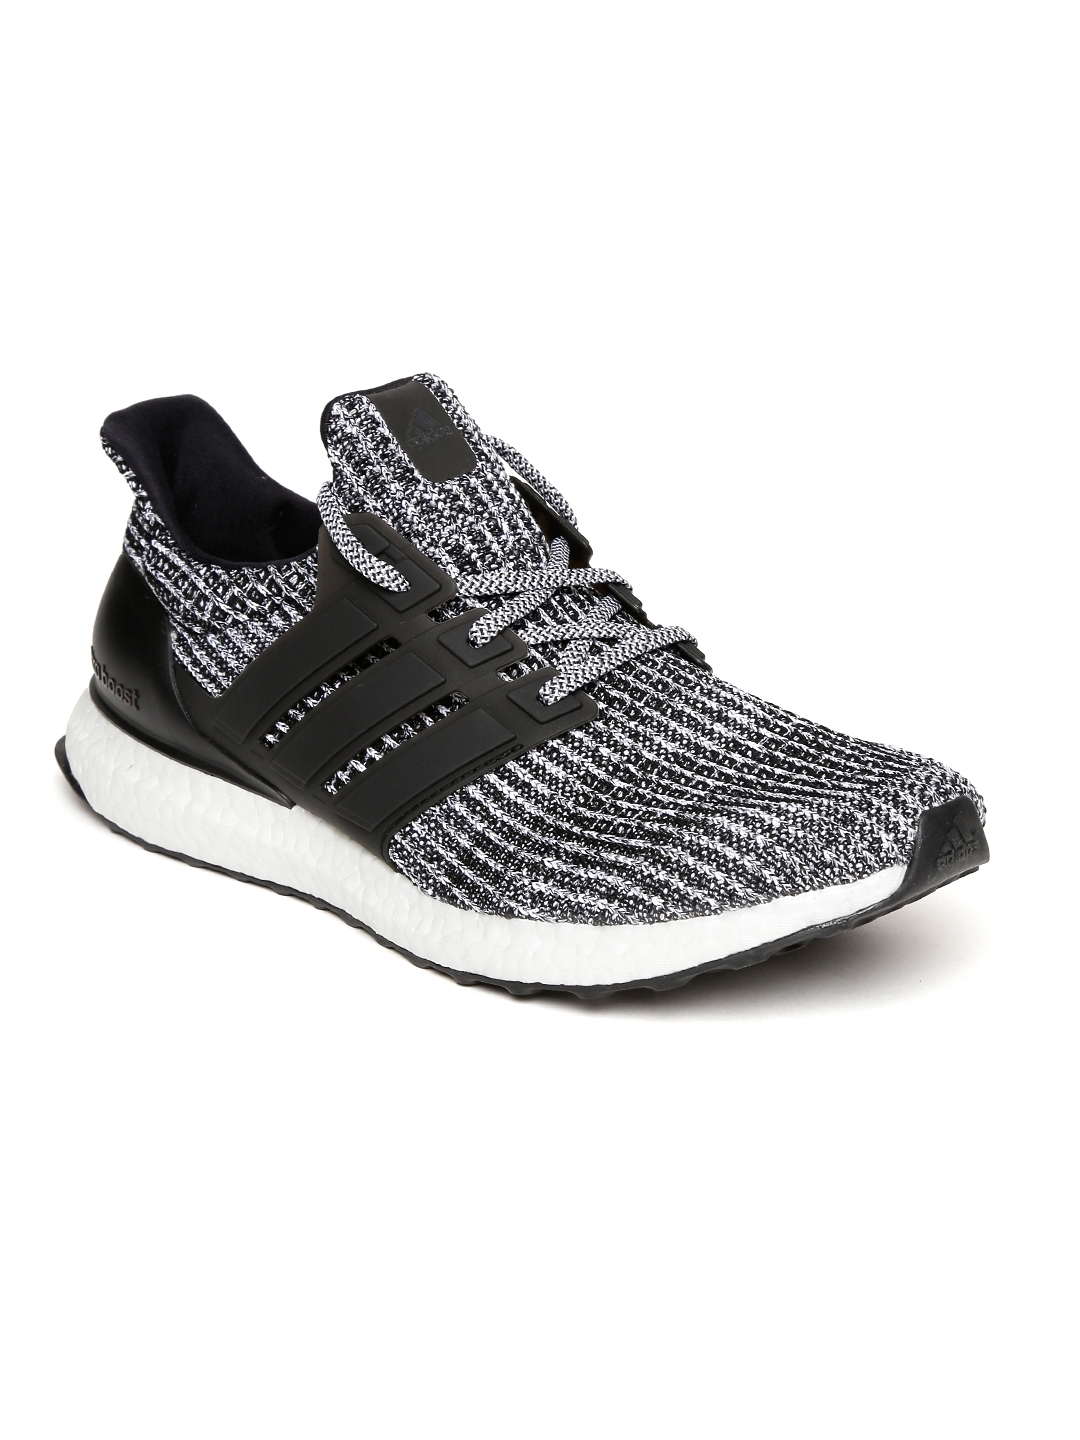 46f96c2b6d0ca Buy ADIDAS Men Black   White Ultraboost Running Shoes - Sports Shoes ...